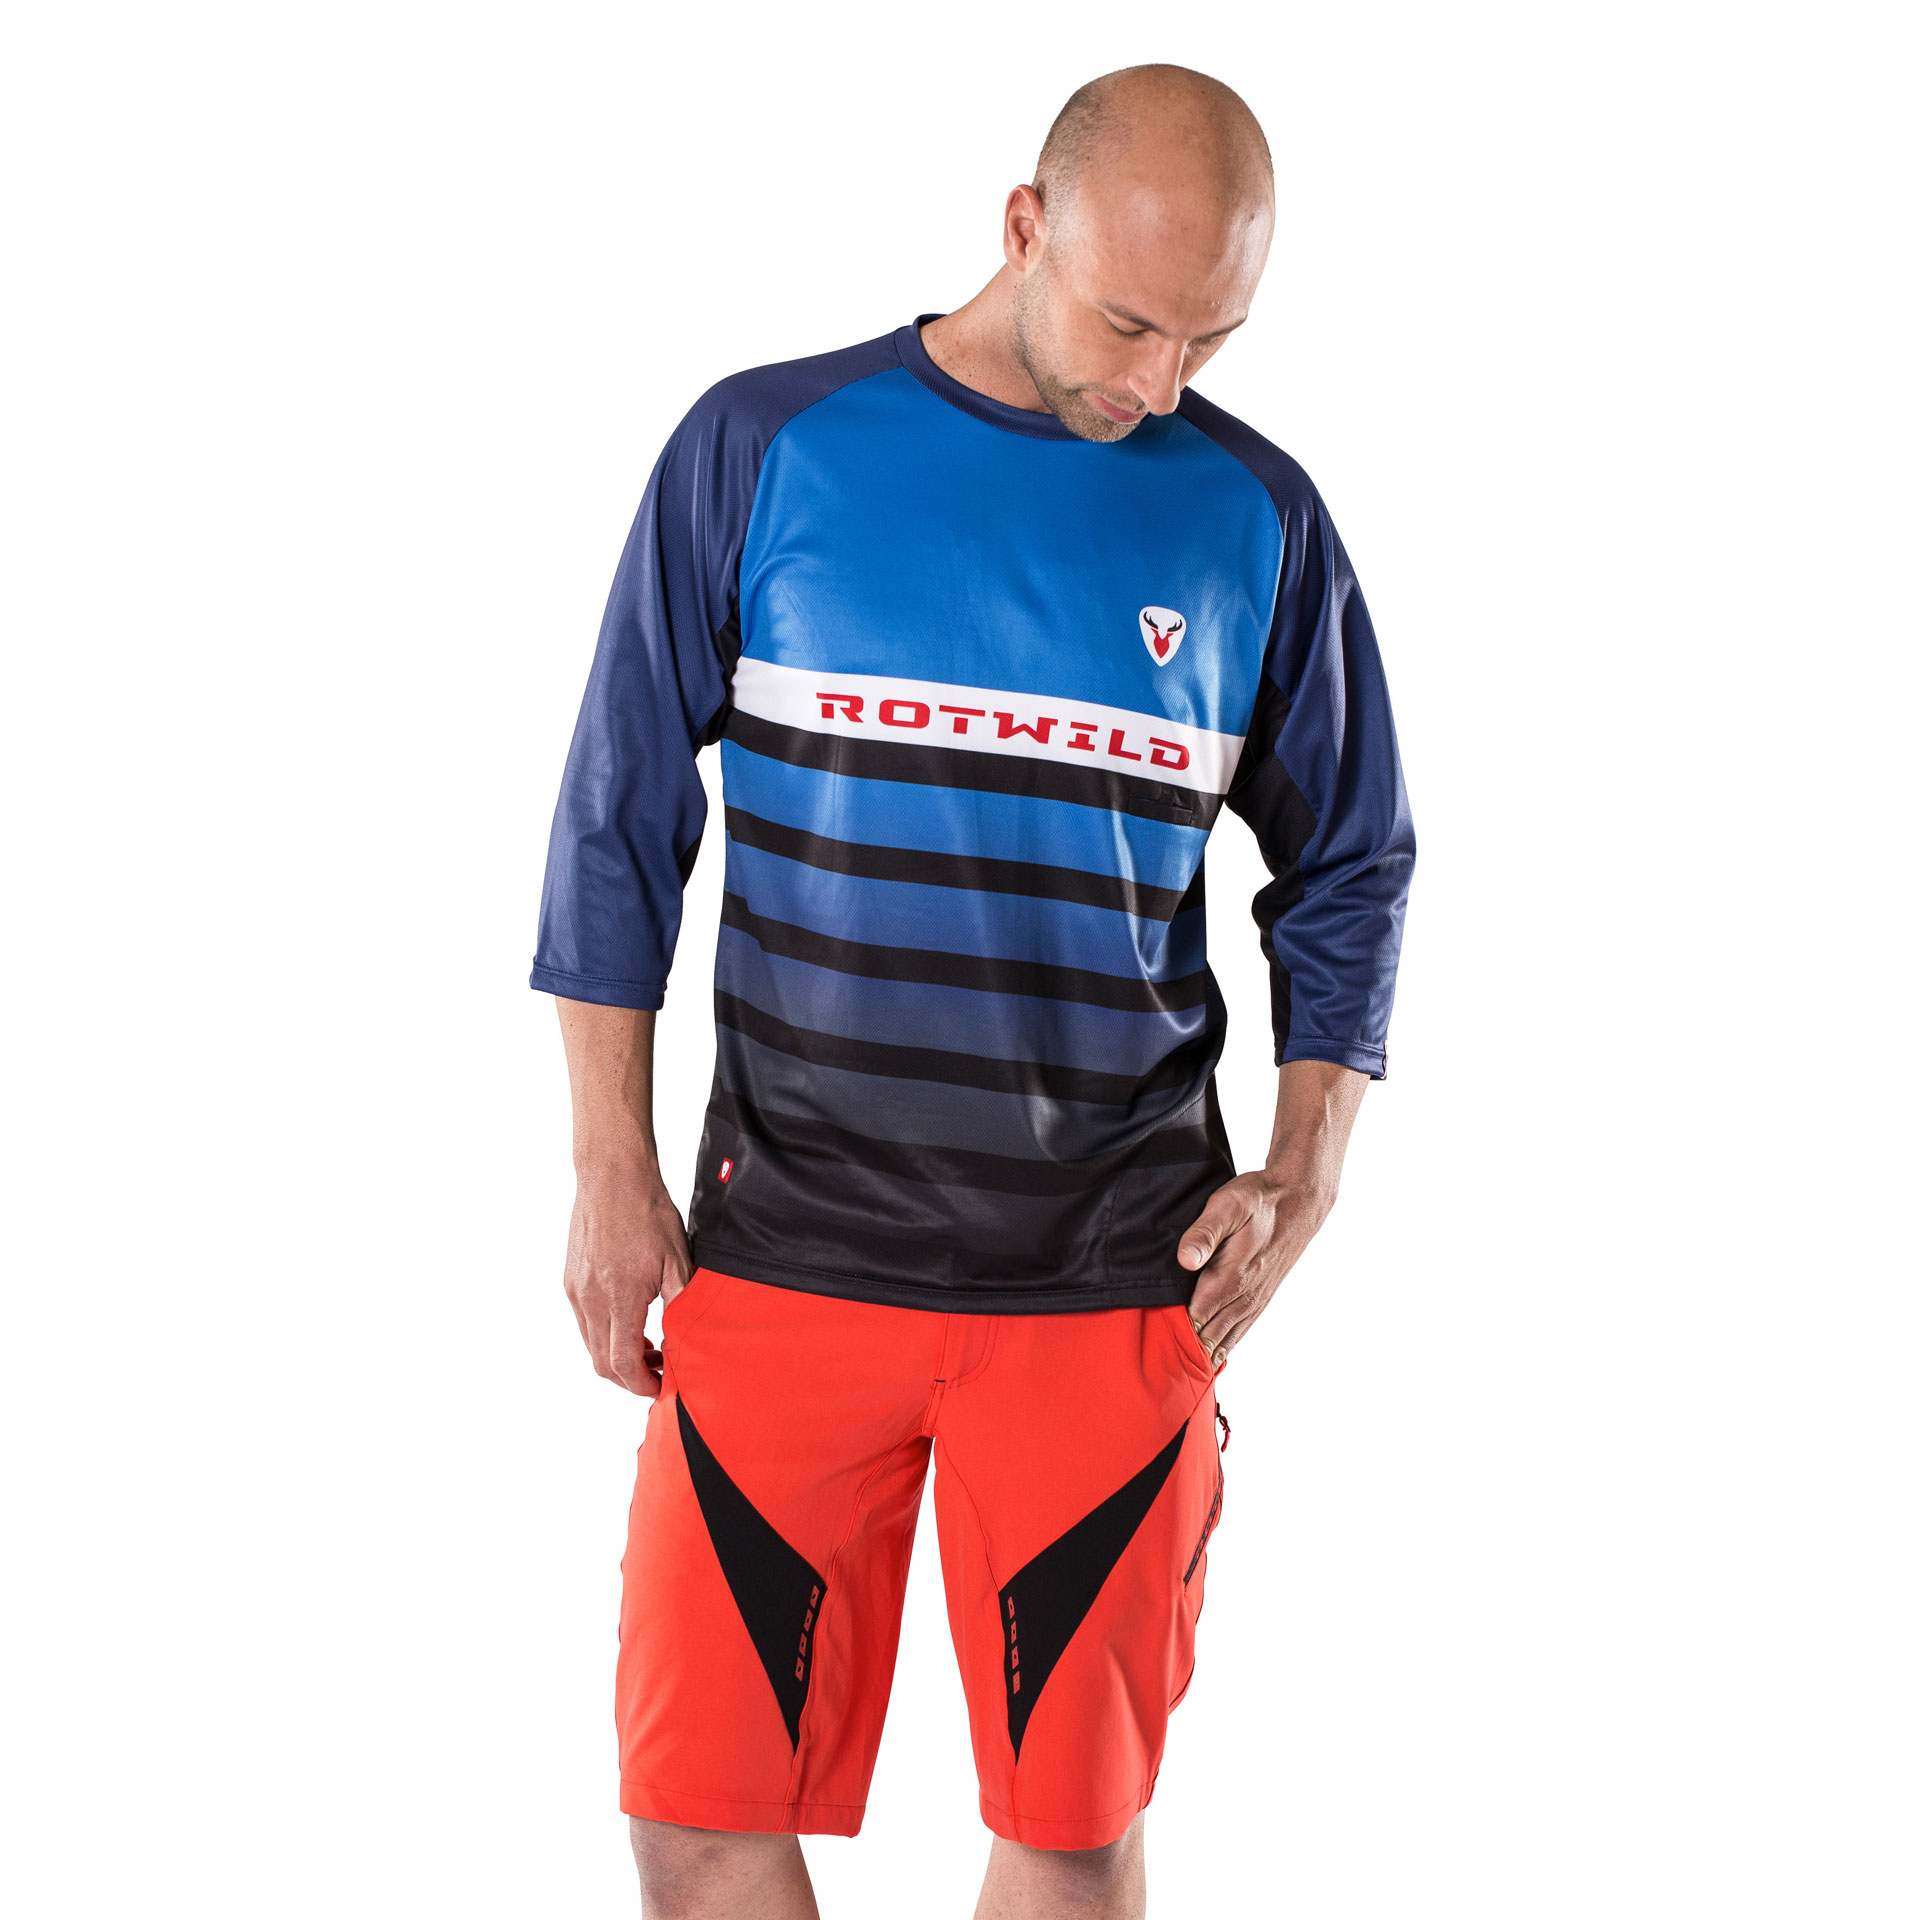 RCD ENDURO SHIRT 3/4 - L - RCD ENDURO SHIRT 3/4 - L